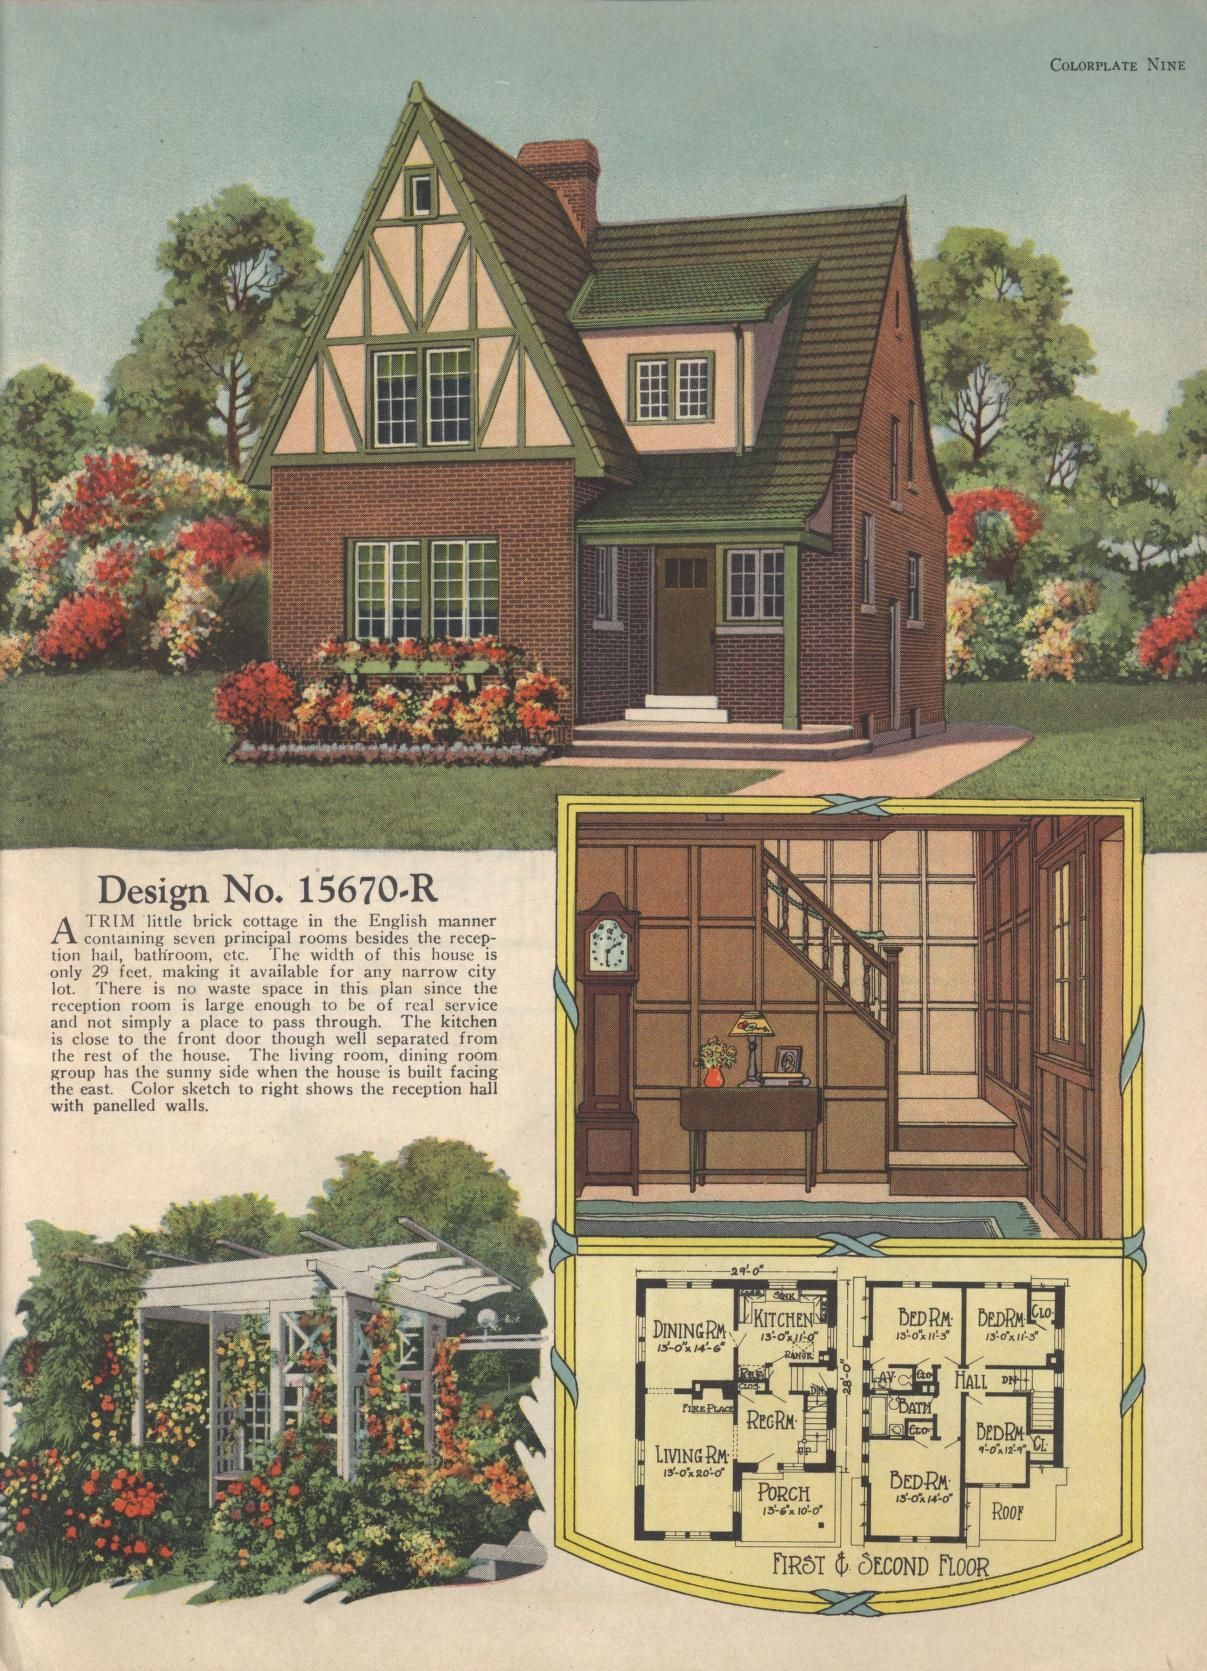 Colorkeed Home Plans Vintage House Plans Sims House Design House Blueprints